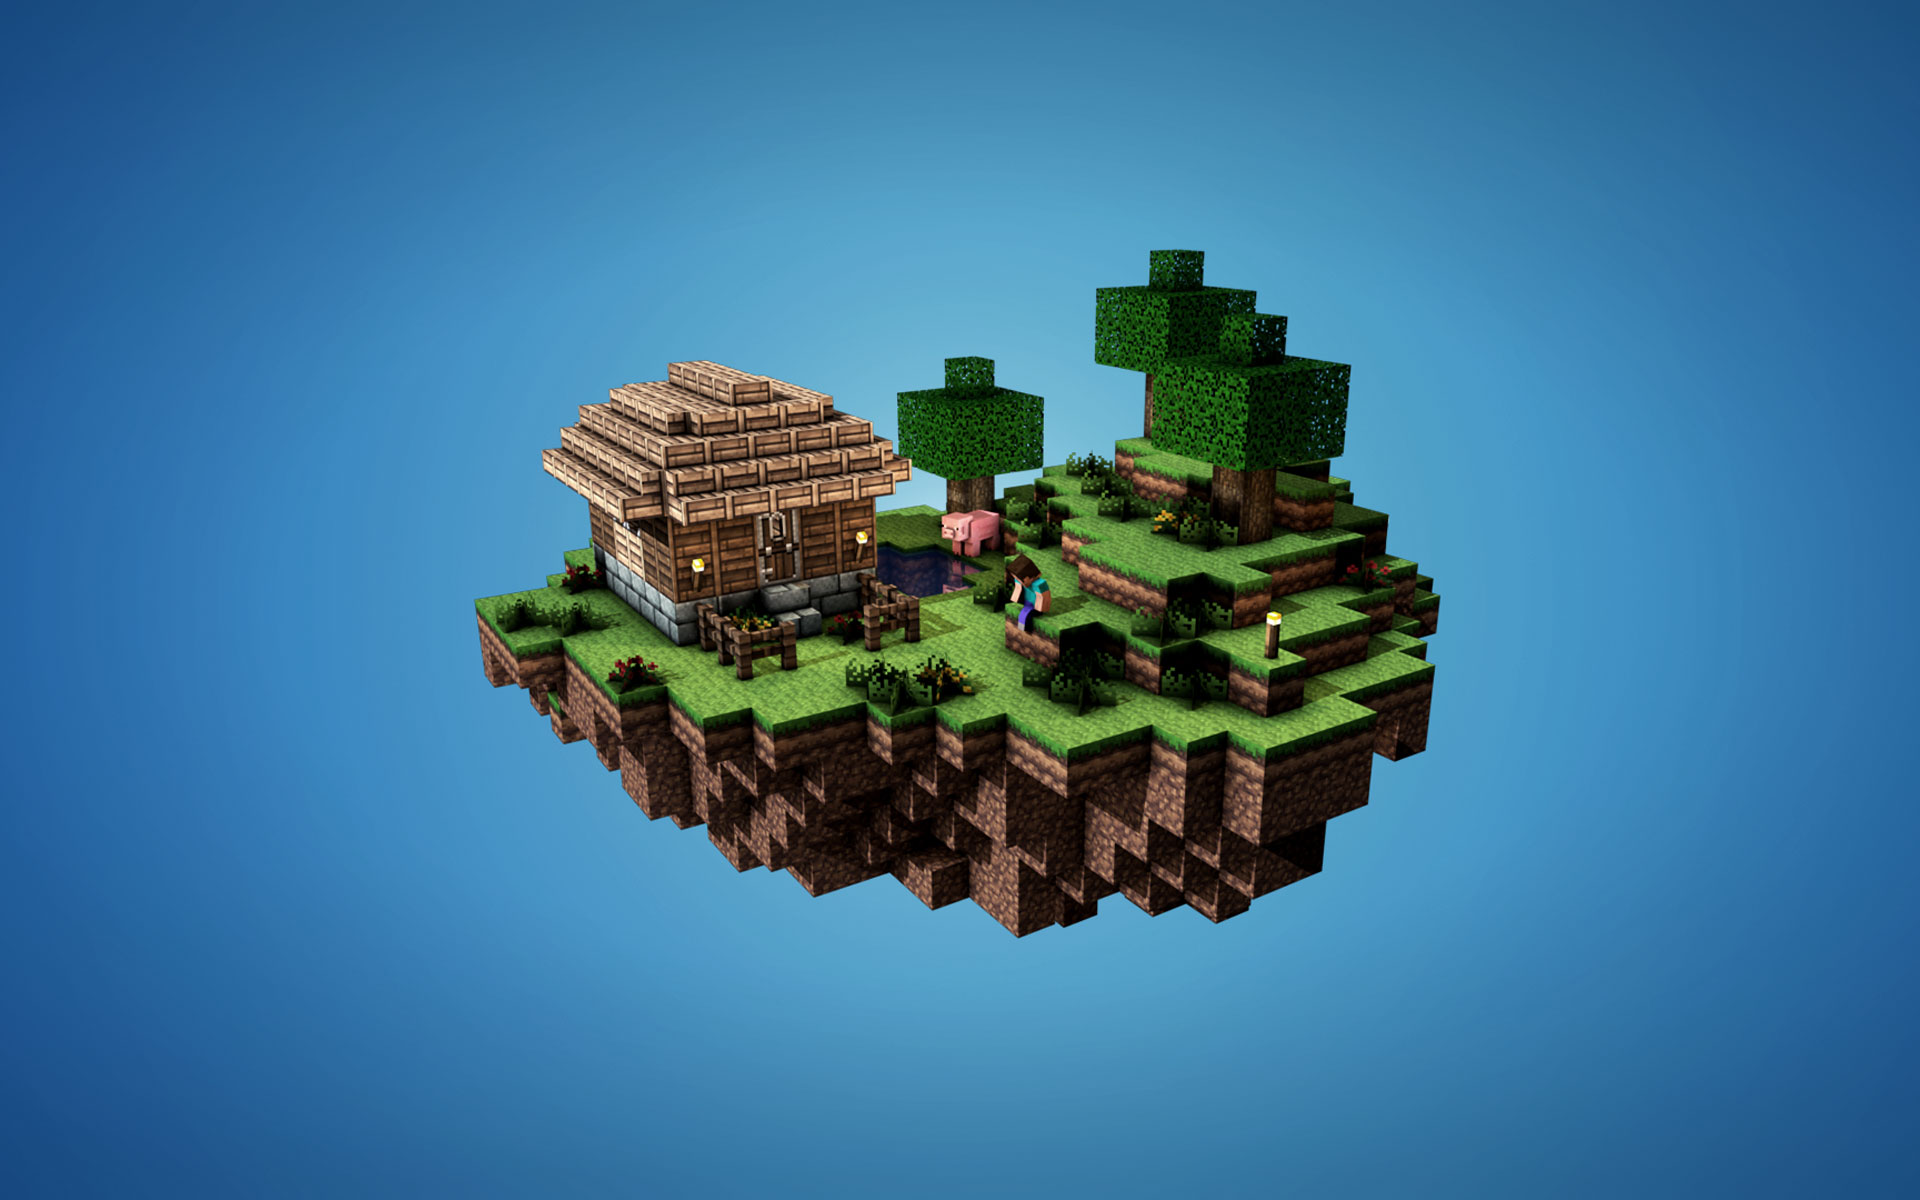 Collection of Minecraft Backgrounds, Minecraft High Quality Wallpapers 1920x1200